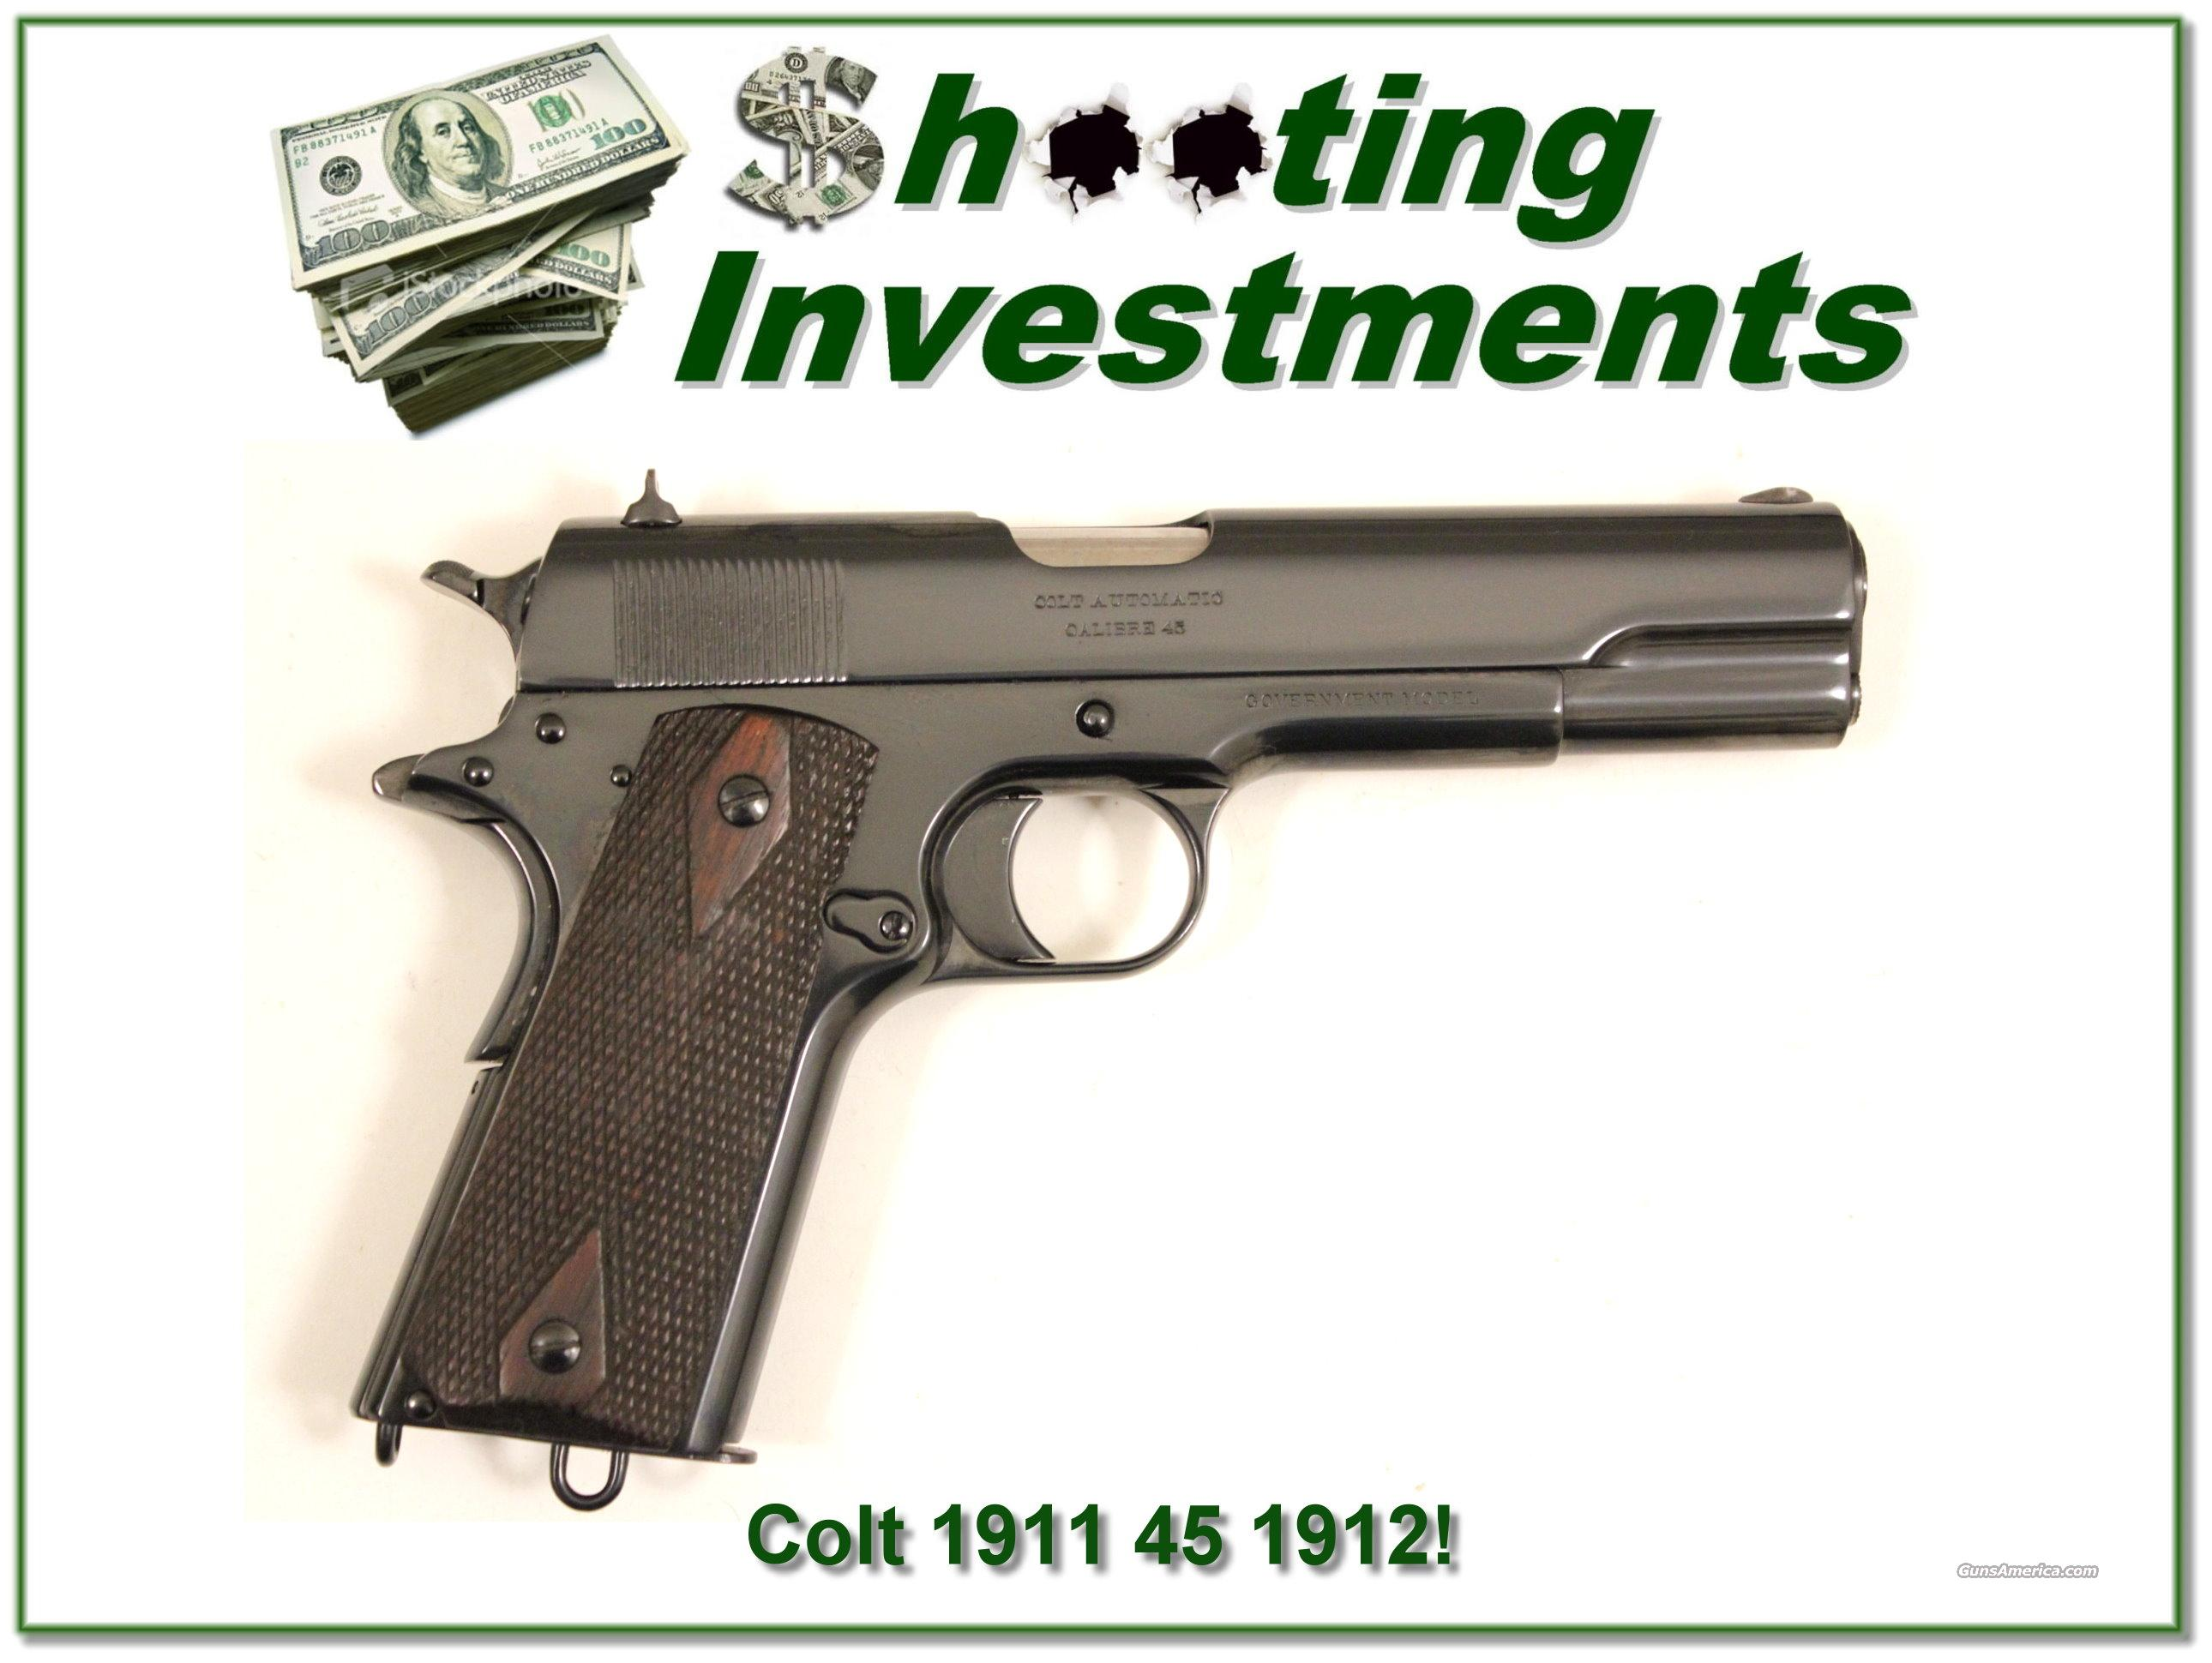 Colt 1911 45 made in 1912 First Year Production!  Guns > Pistols > Colt Automatic Pistols (1911 & Var)